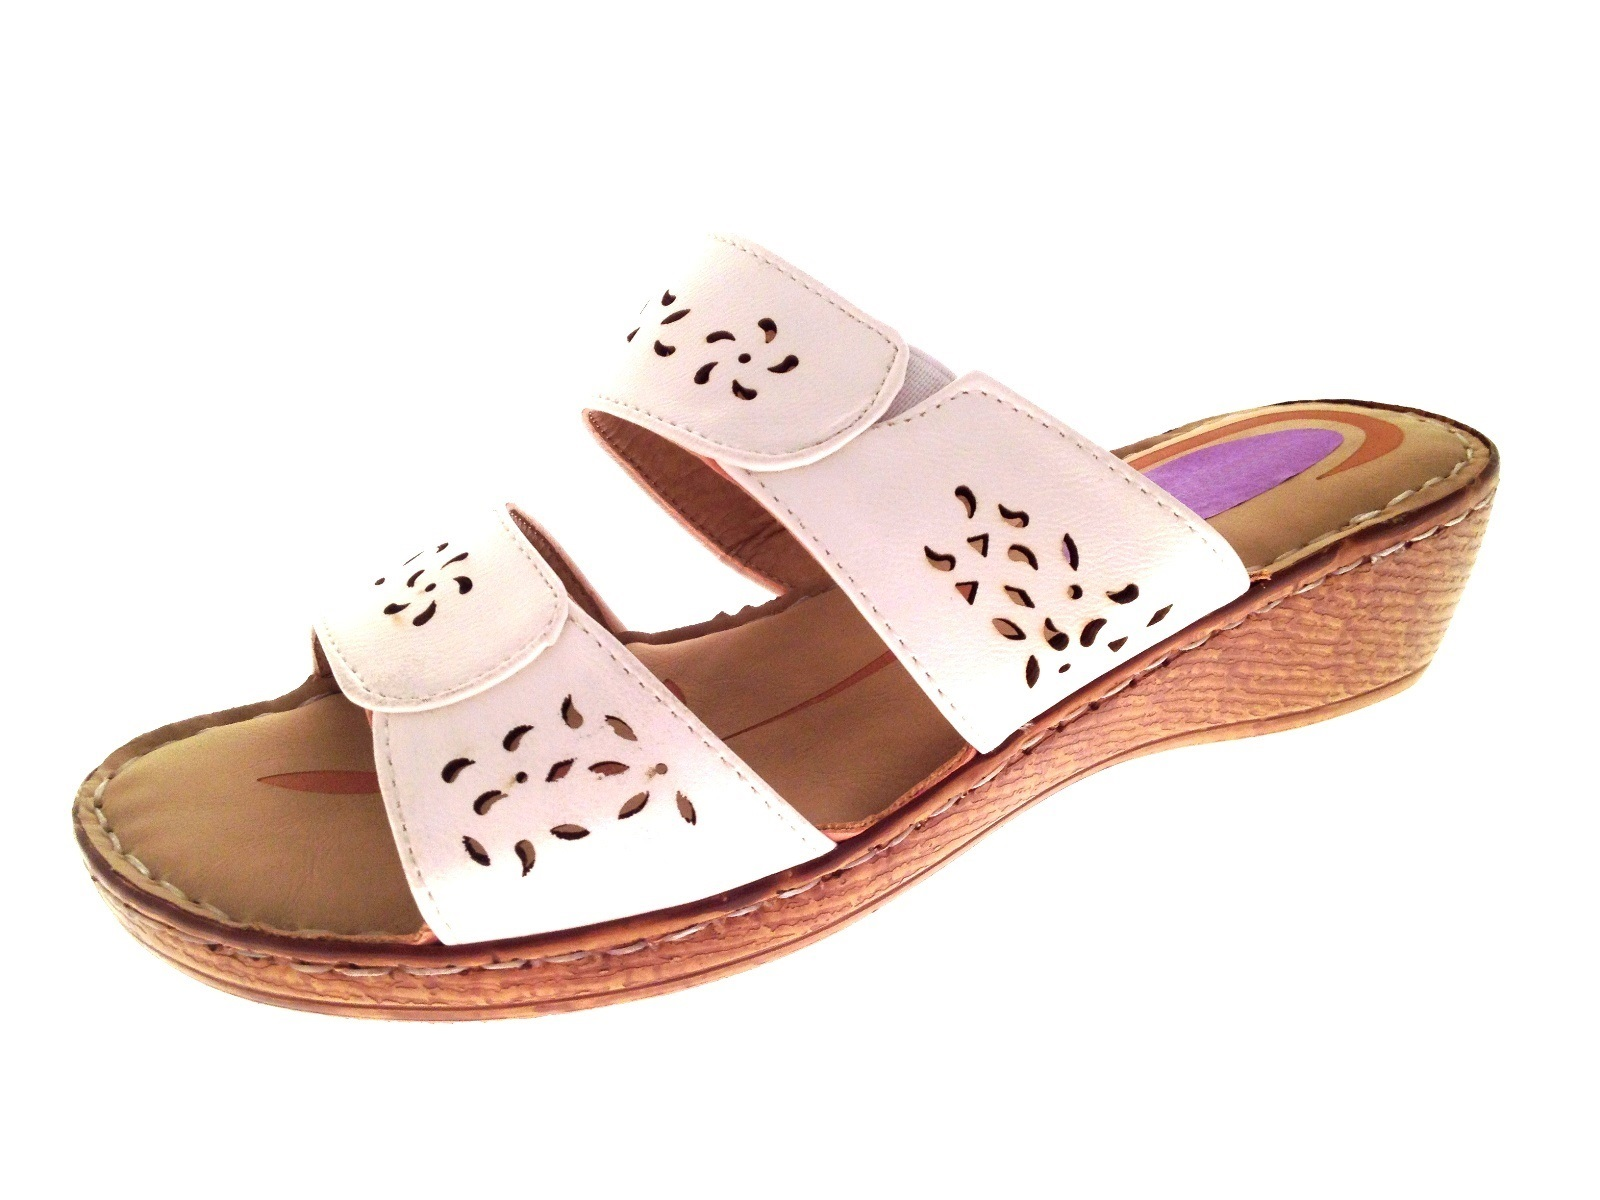 Sandals shoes summer - Womens Low Wedge Comfort Sandals Strappy Mules Ladies Summer Shoes Size Uk 3 8